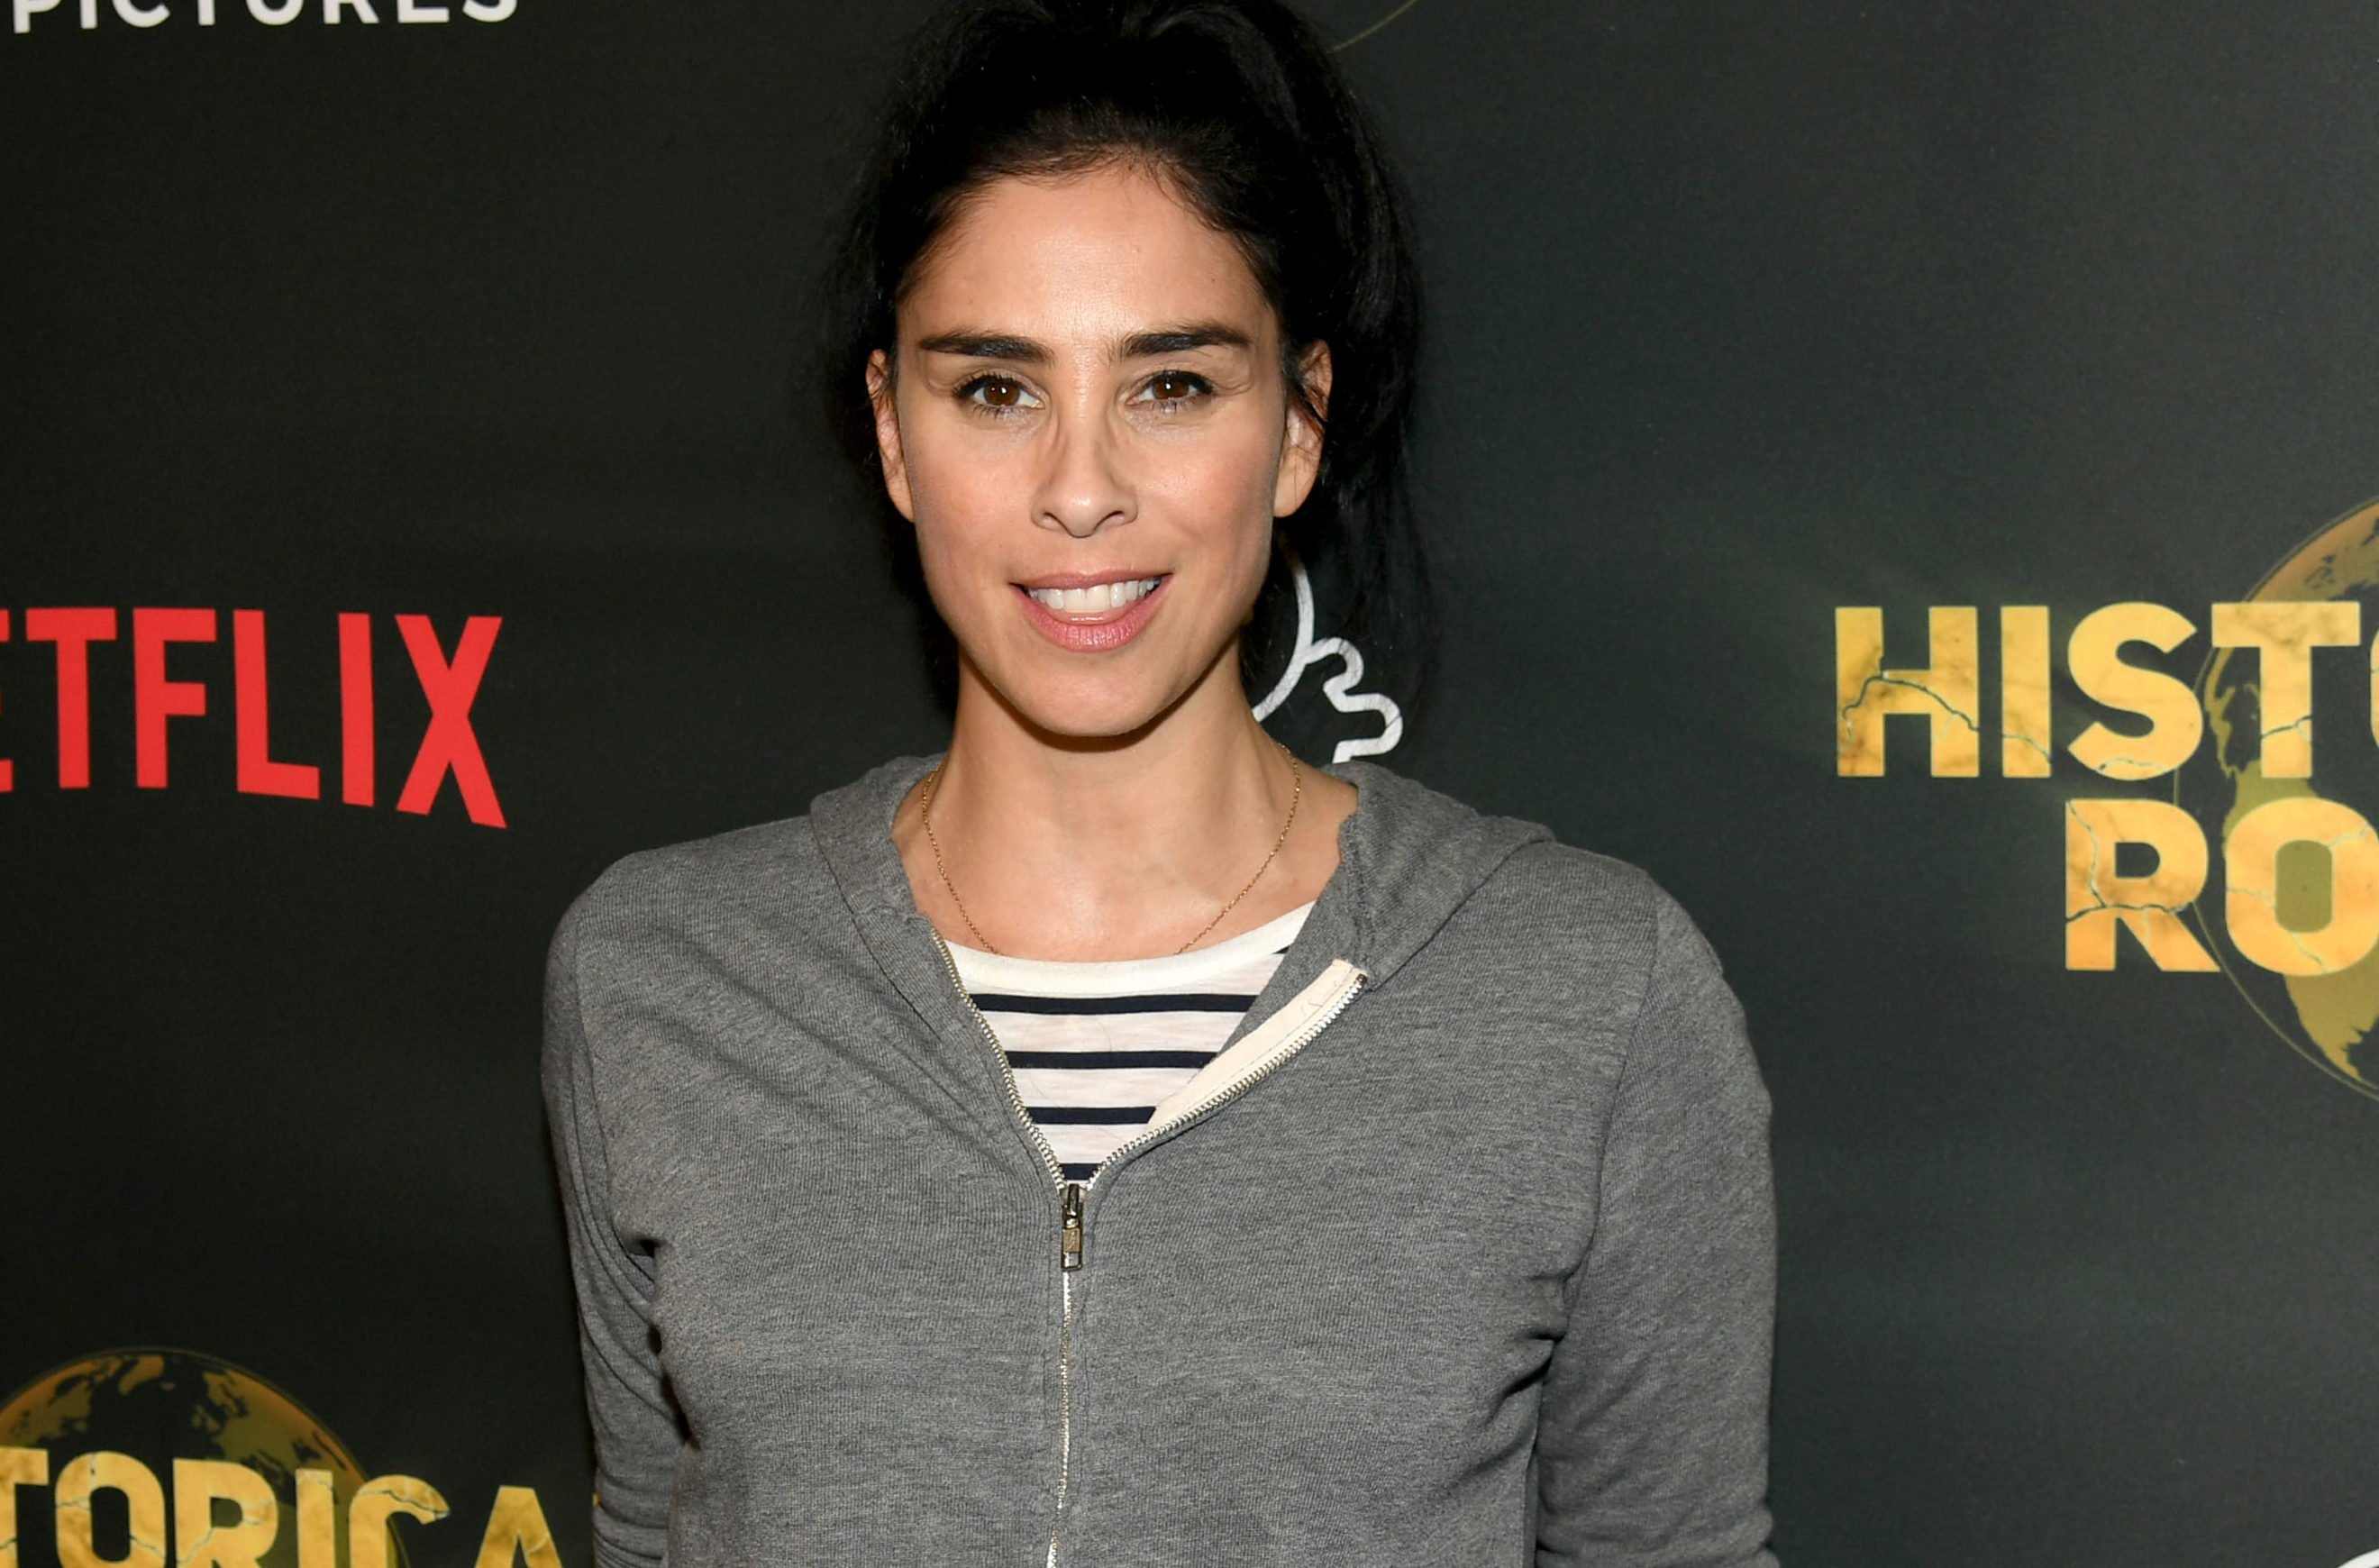 Sarah Silverman Reveals She Was Fired From a Movie Over Old Sketch Wearing Blackface